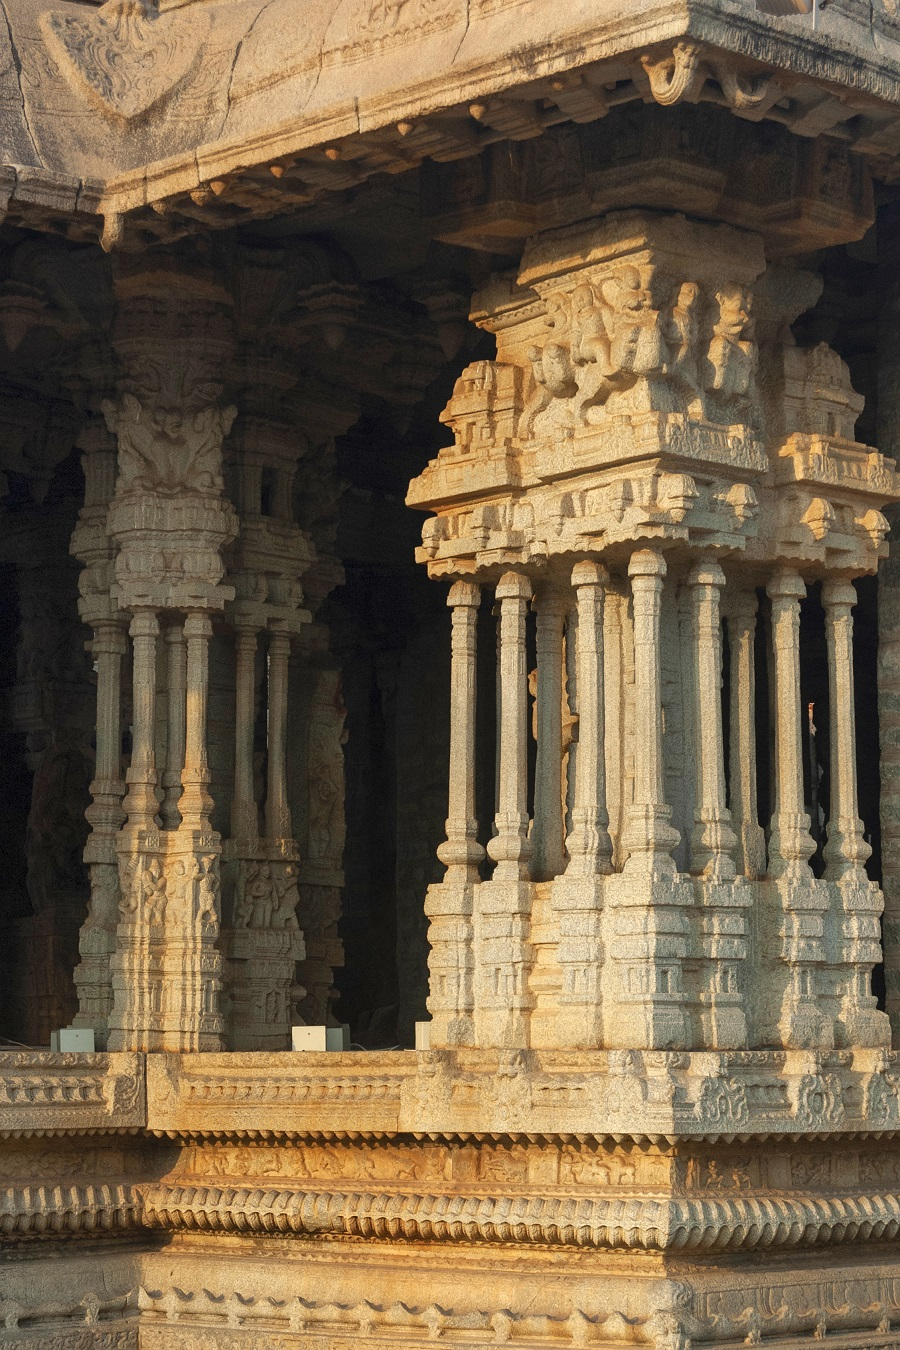 The Temple with Musical Pillars